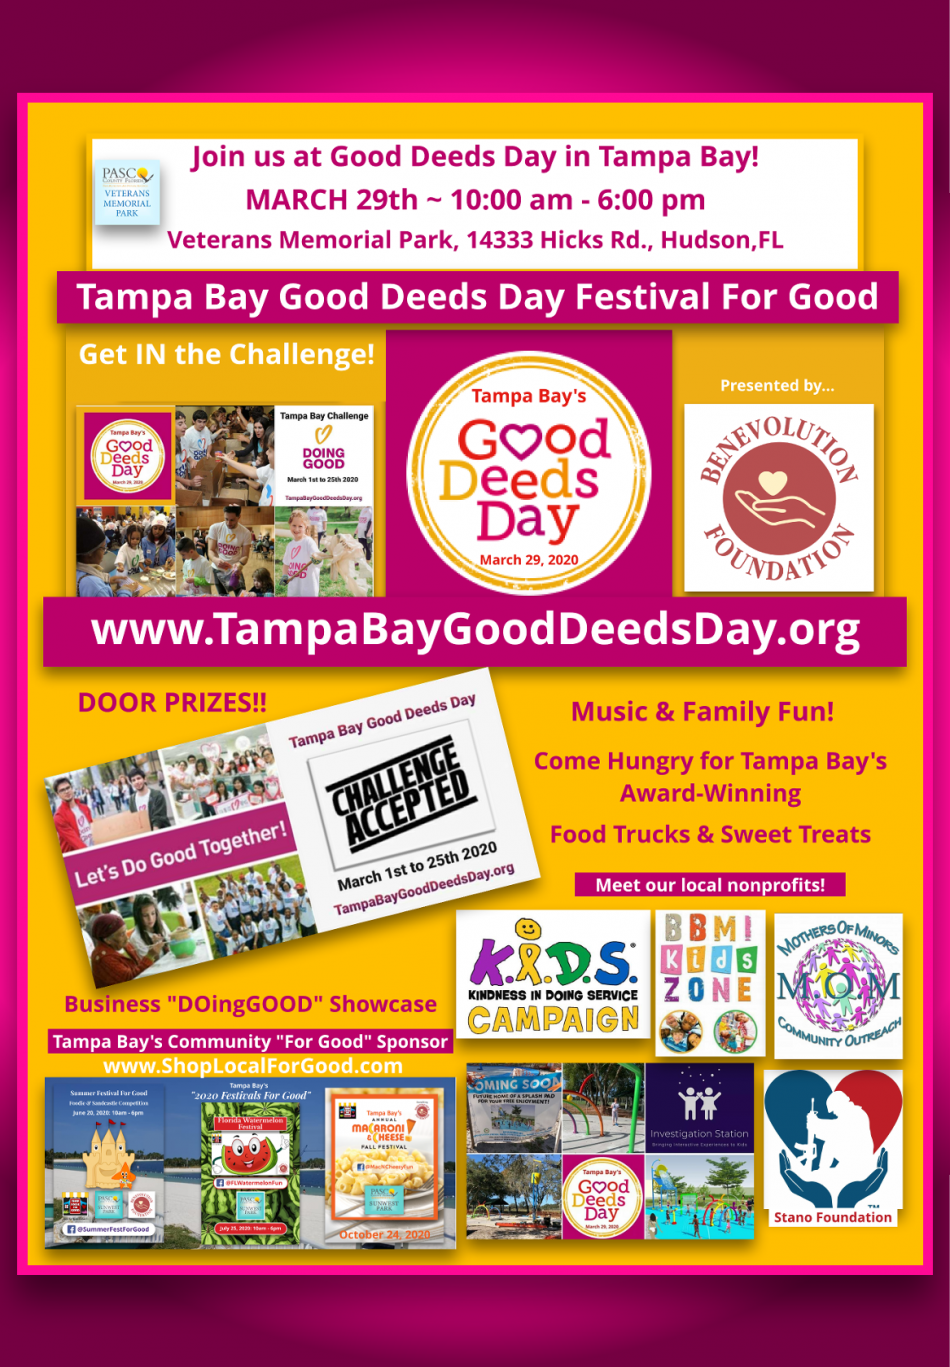 Tampa Bay Good Deeds Day Festival